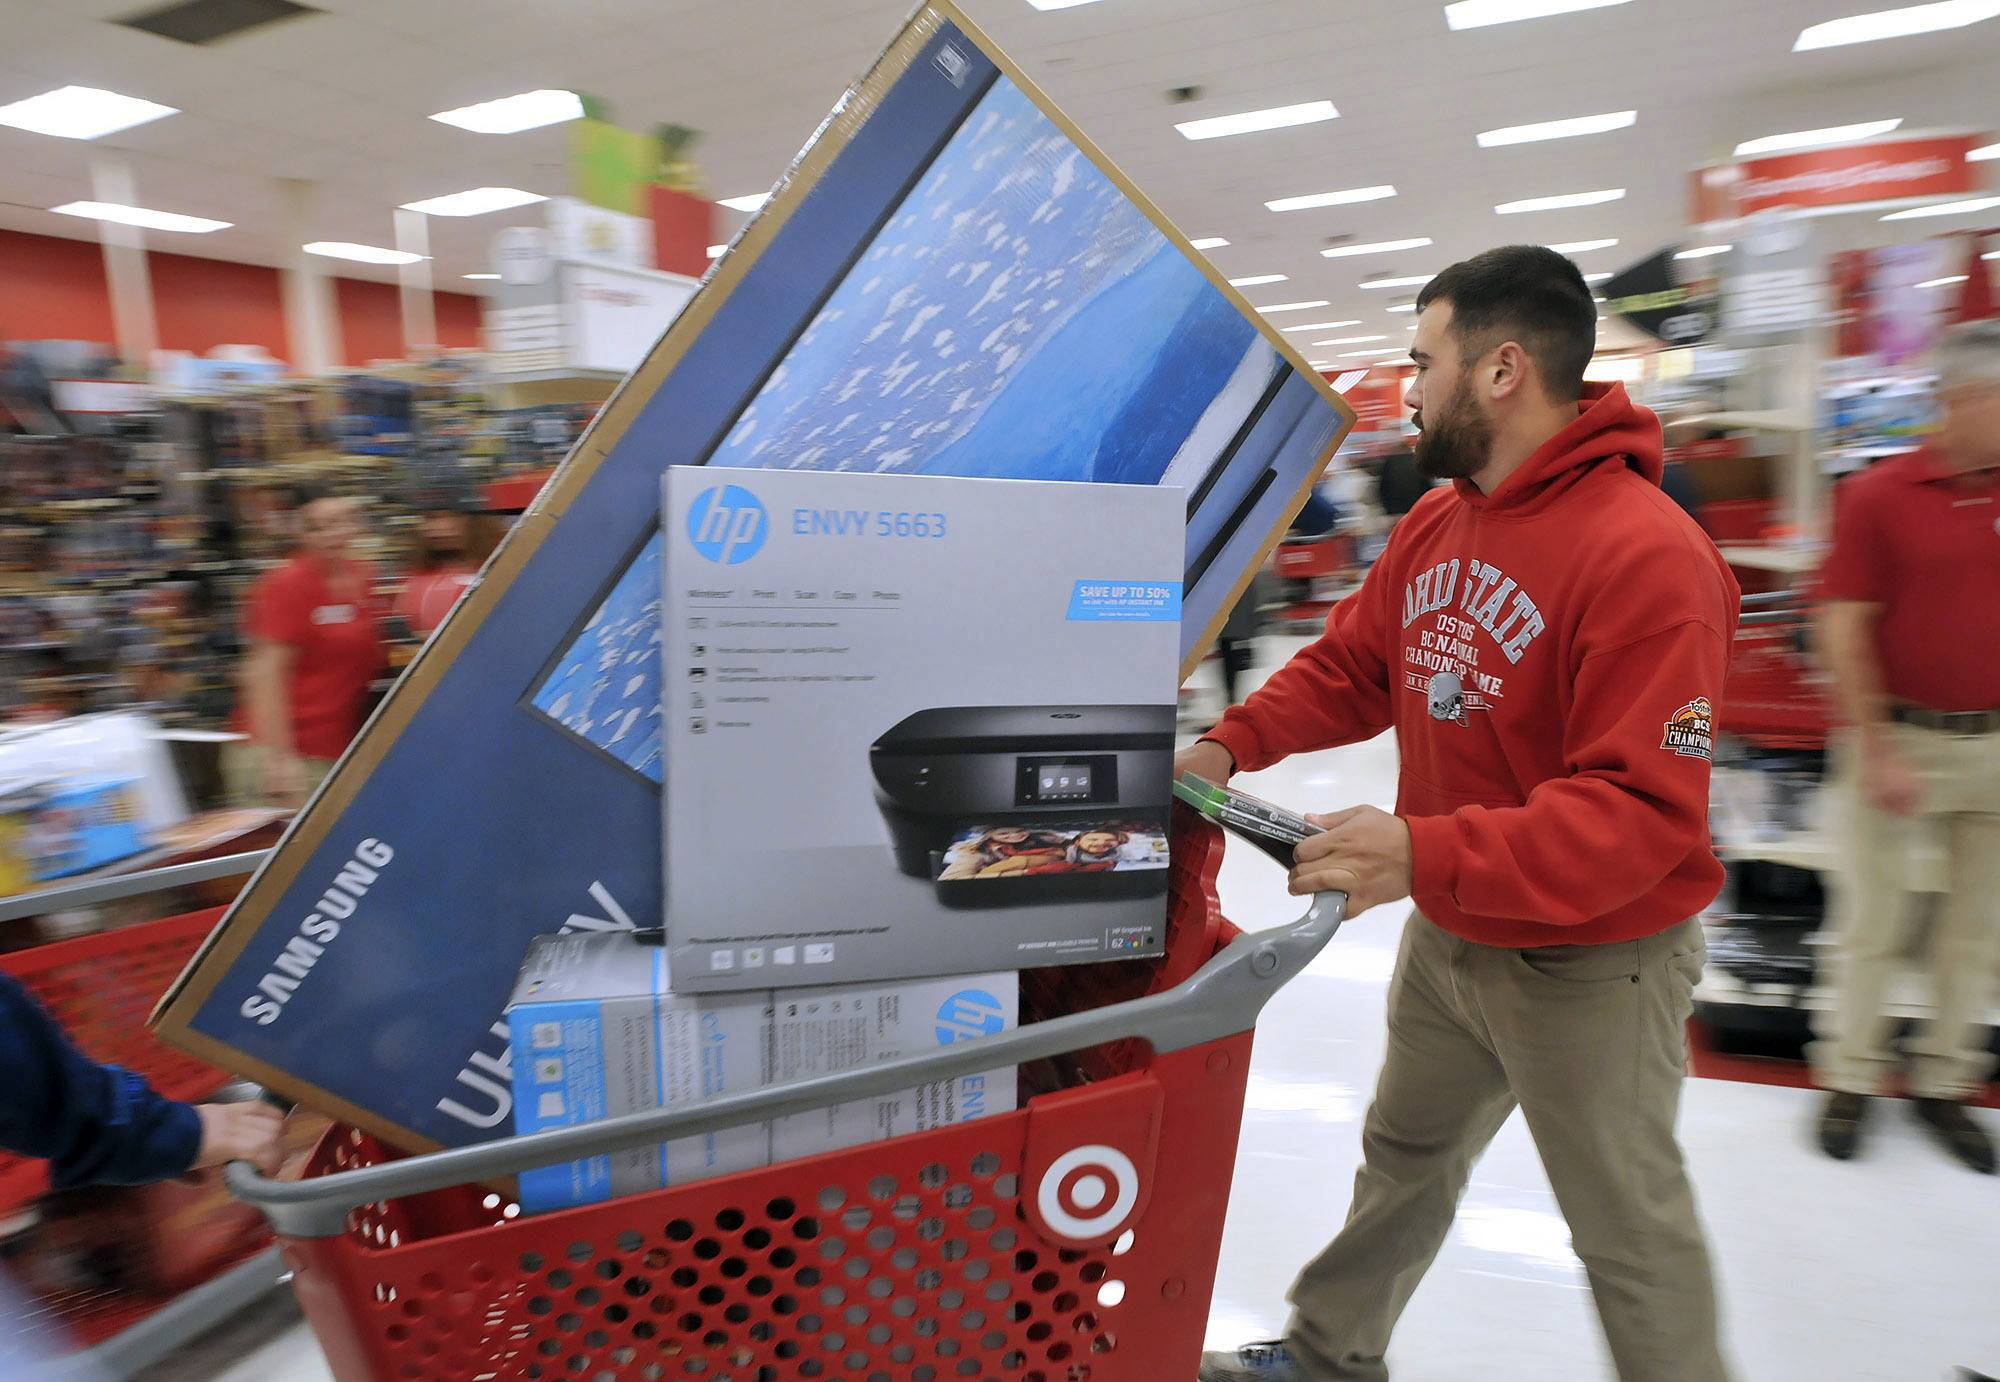 Target is looking to attract more men to its stores and is adding merchandise, from craft beer to clothing, to do so.